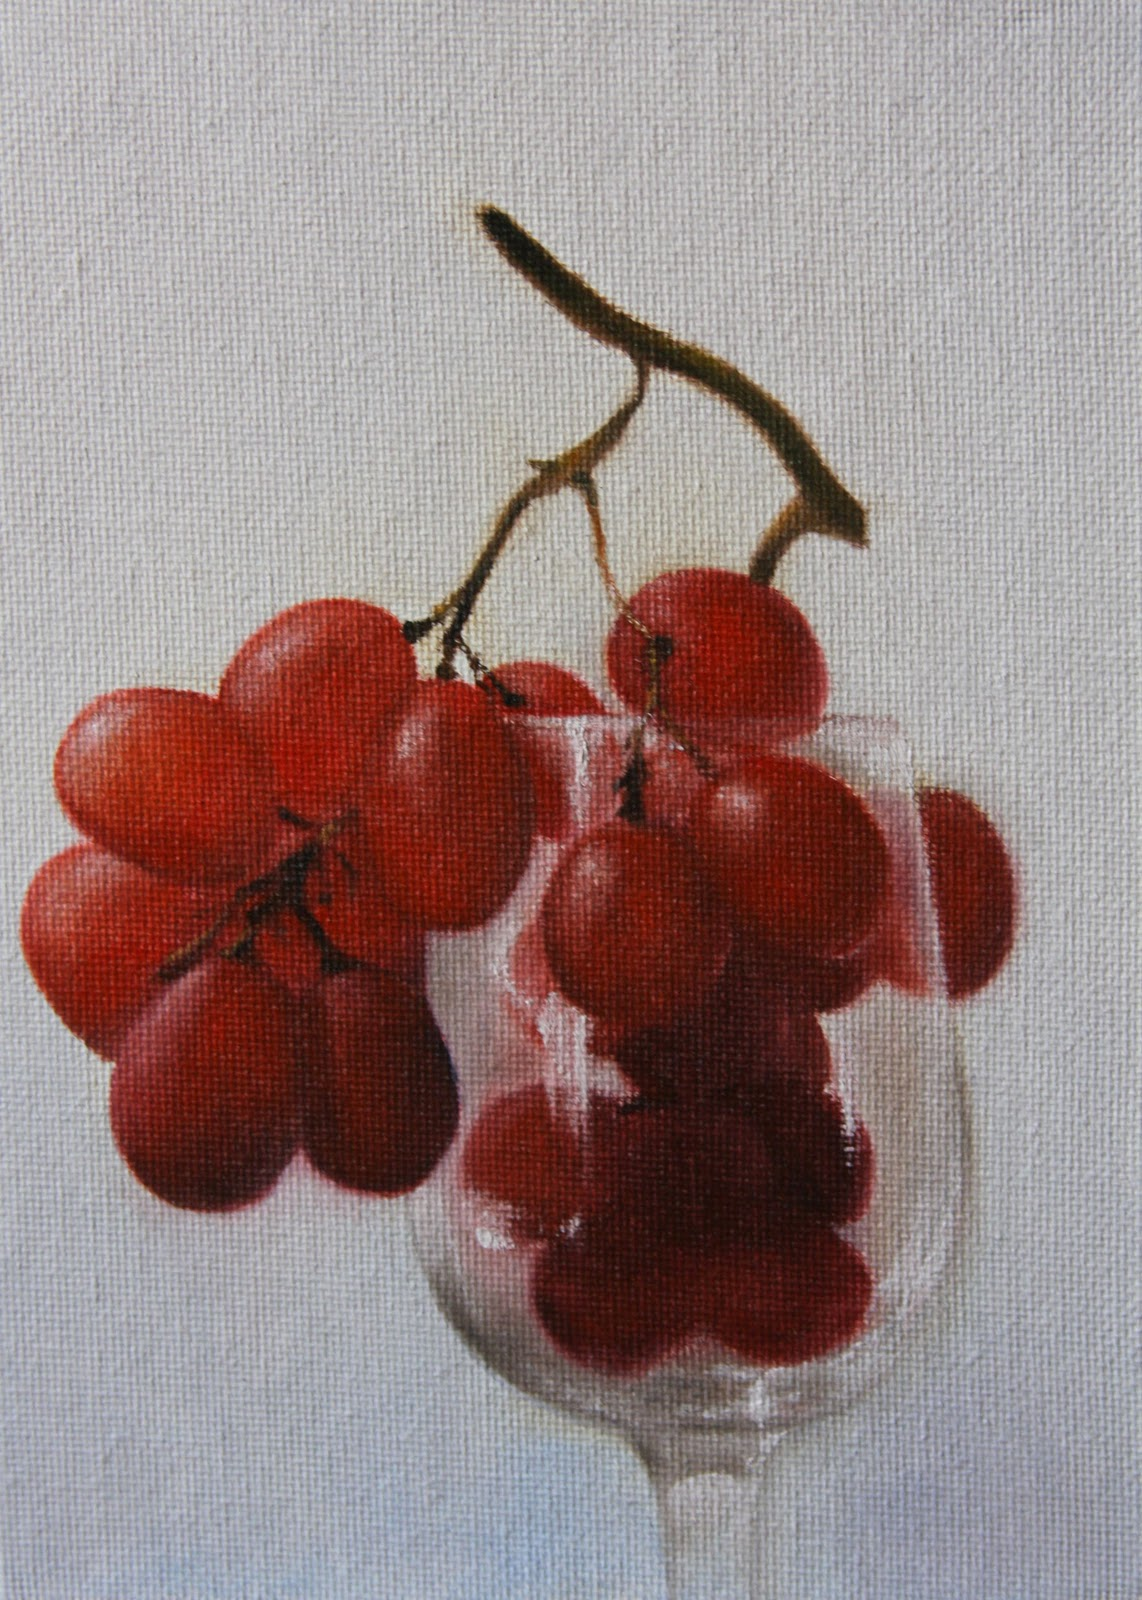 """Grapes & Wine Glass"" original fine art by Jonathan Aller"